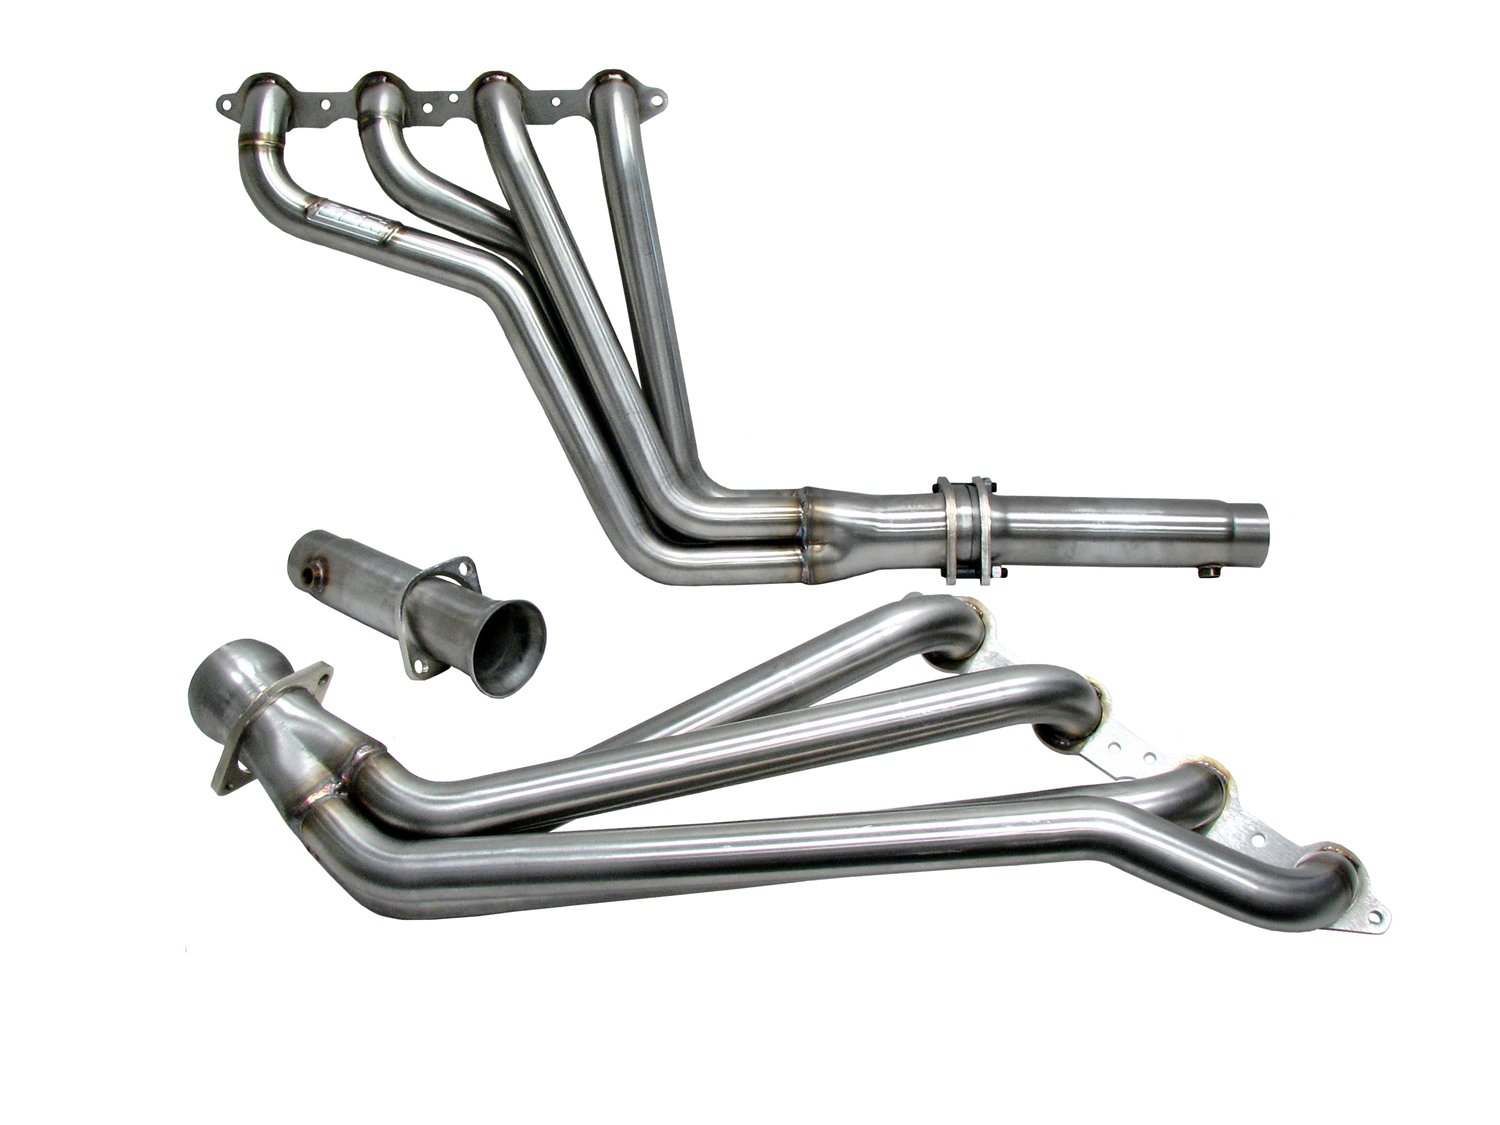 BBK 40315 1-3/4'' Full Length Long Tube High Flow Performance Exhaust Headers System With Off Road Only Pipes for Camaro V8, SS, LS3, L99 - 304 Stainless